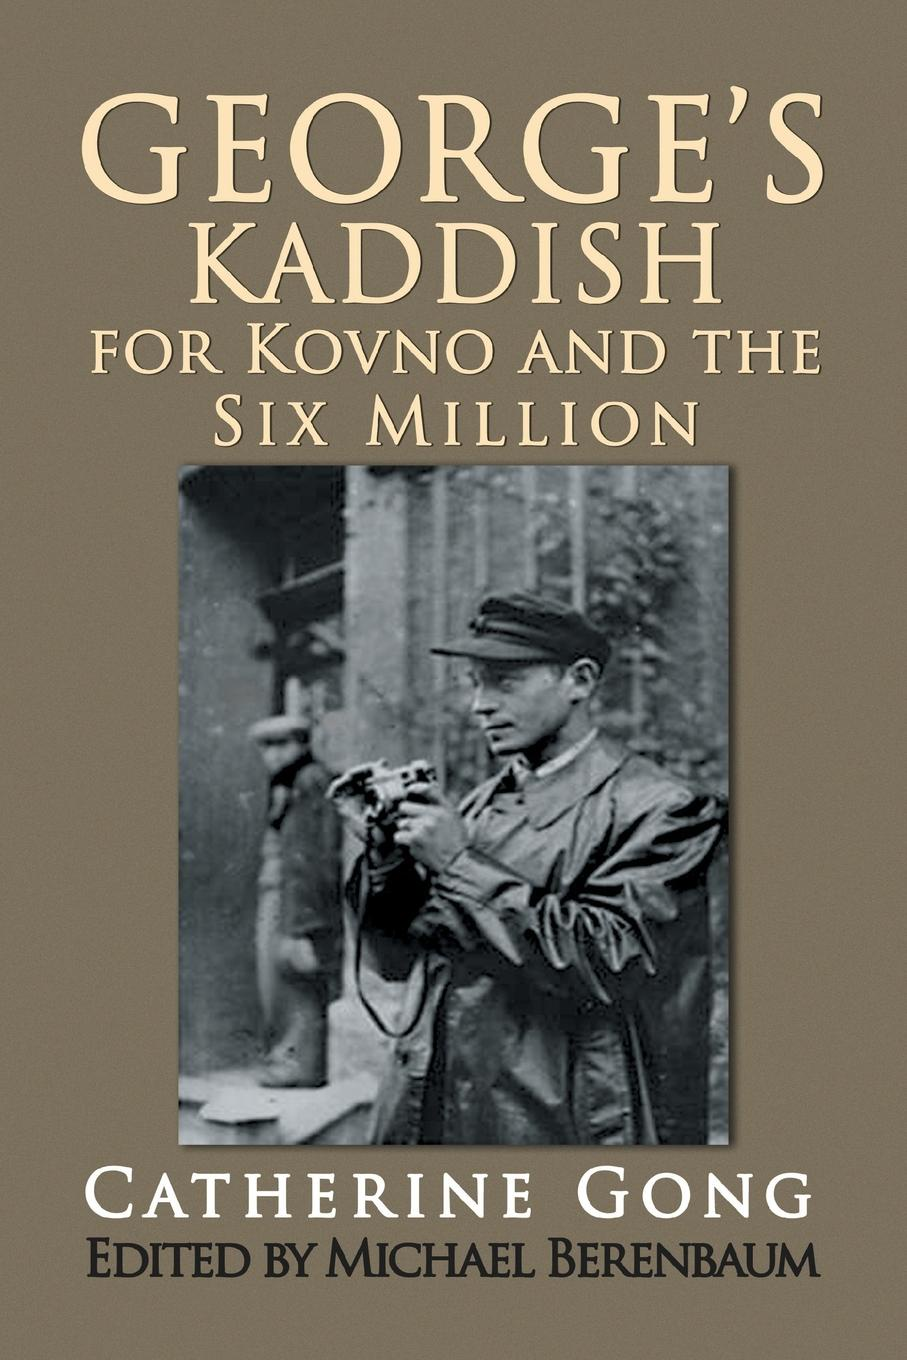 Catherine Gong George's Kaddish for Kovno and the Six Million catherine george bargaining with the boss